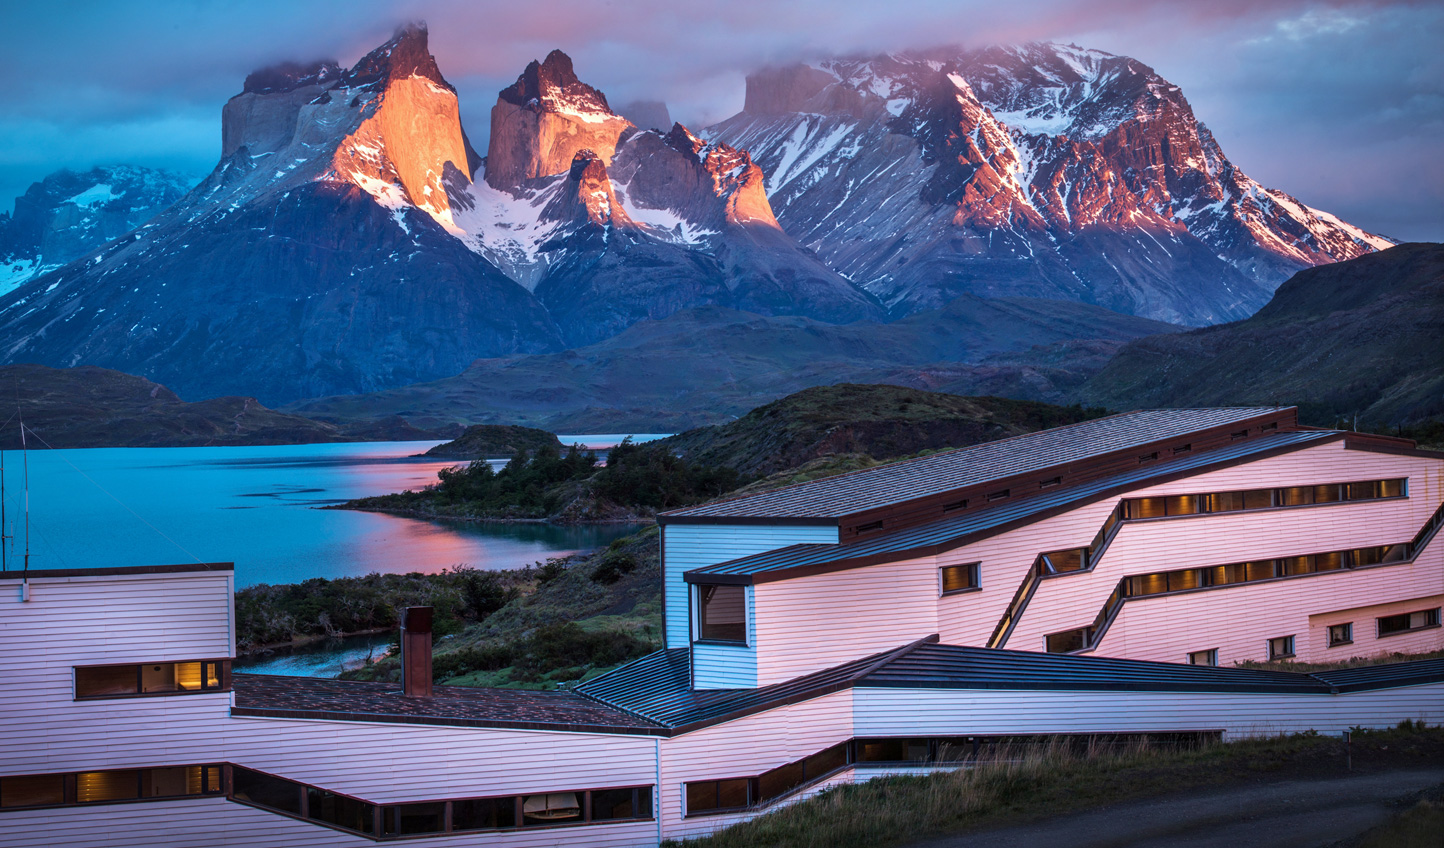 Striking architecture meets natural beauty